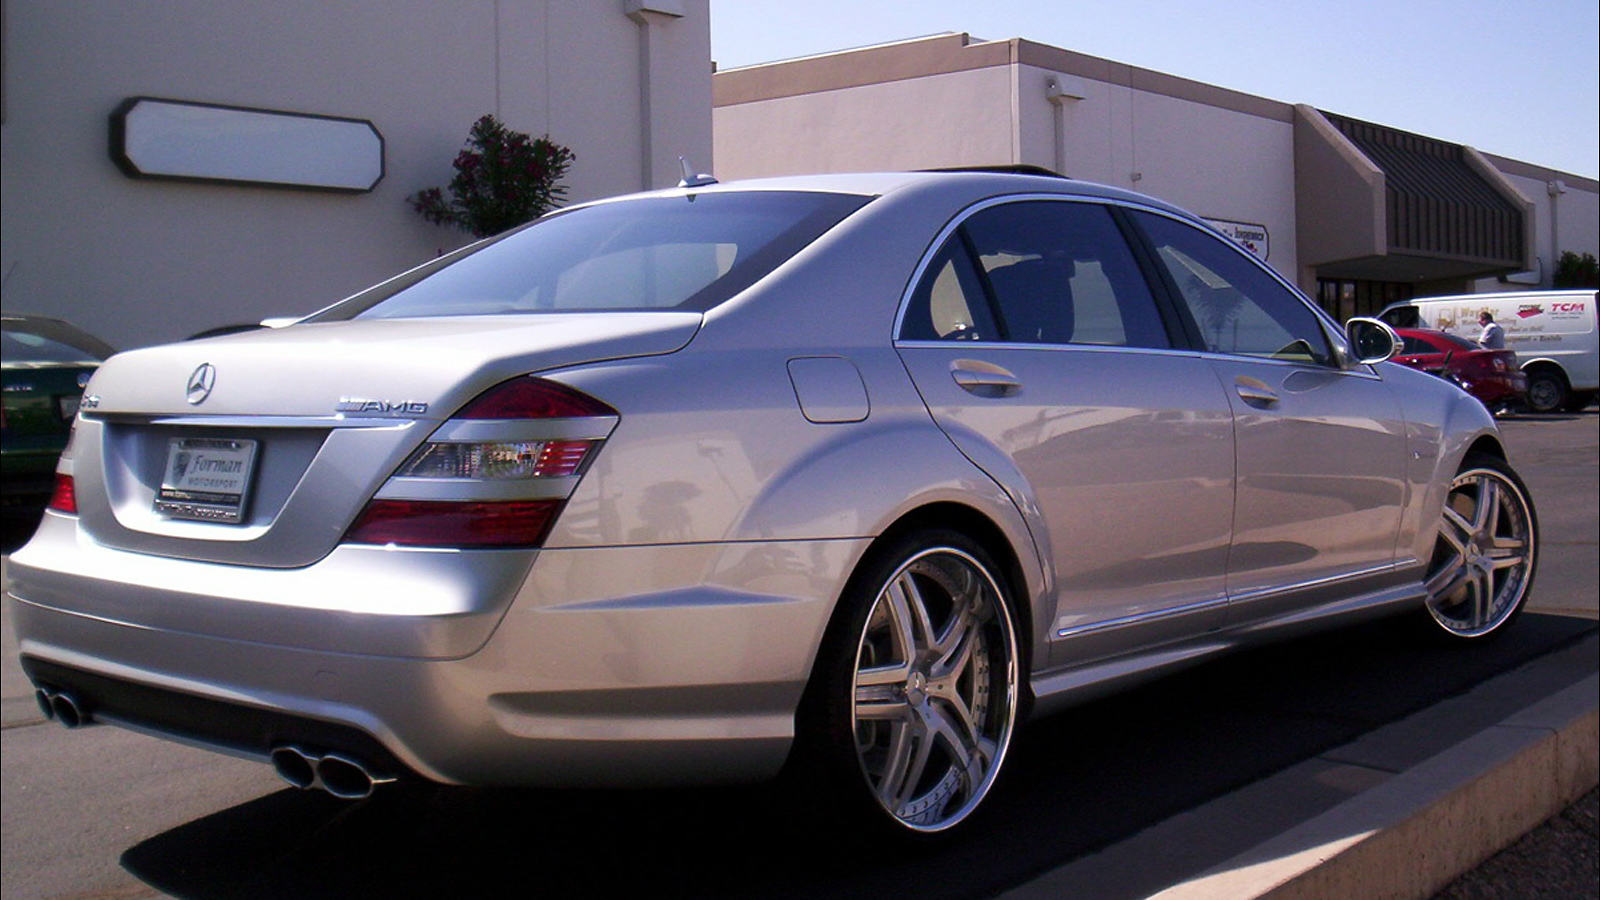 Mercedes benz s550 illusion gallery mht wheels inc for Mercedes benz wheel